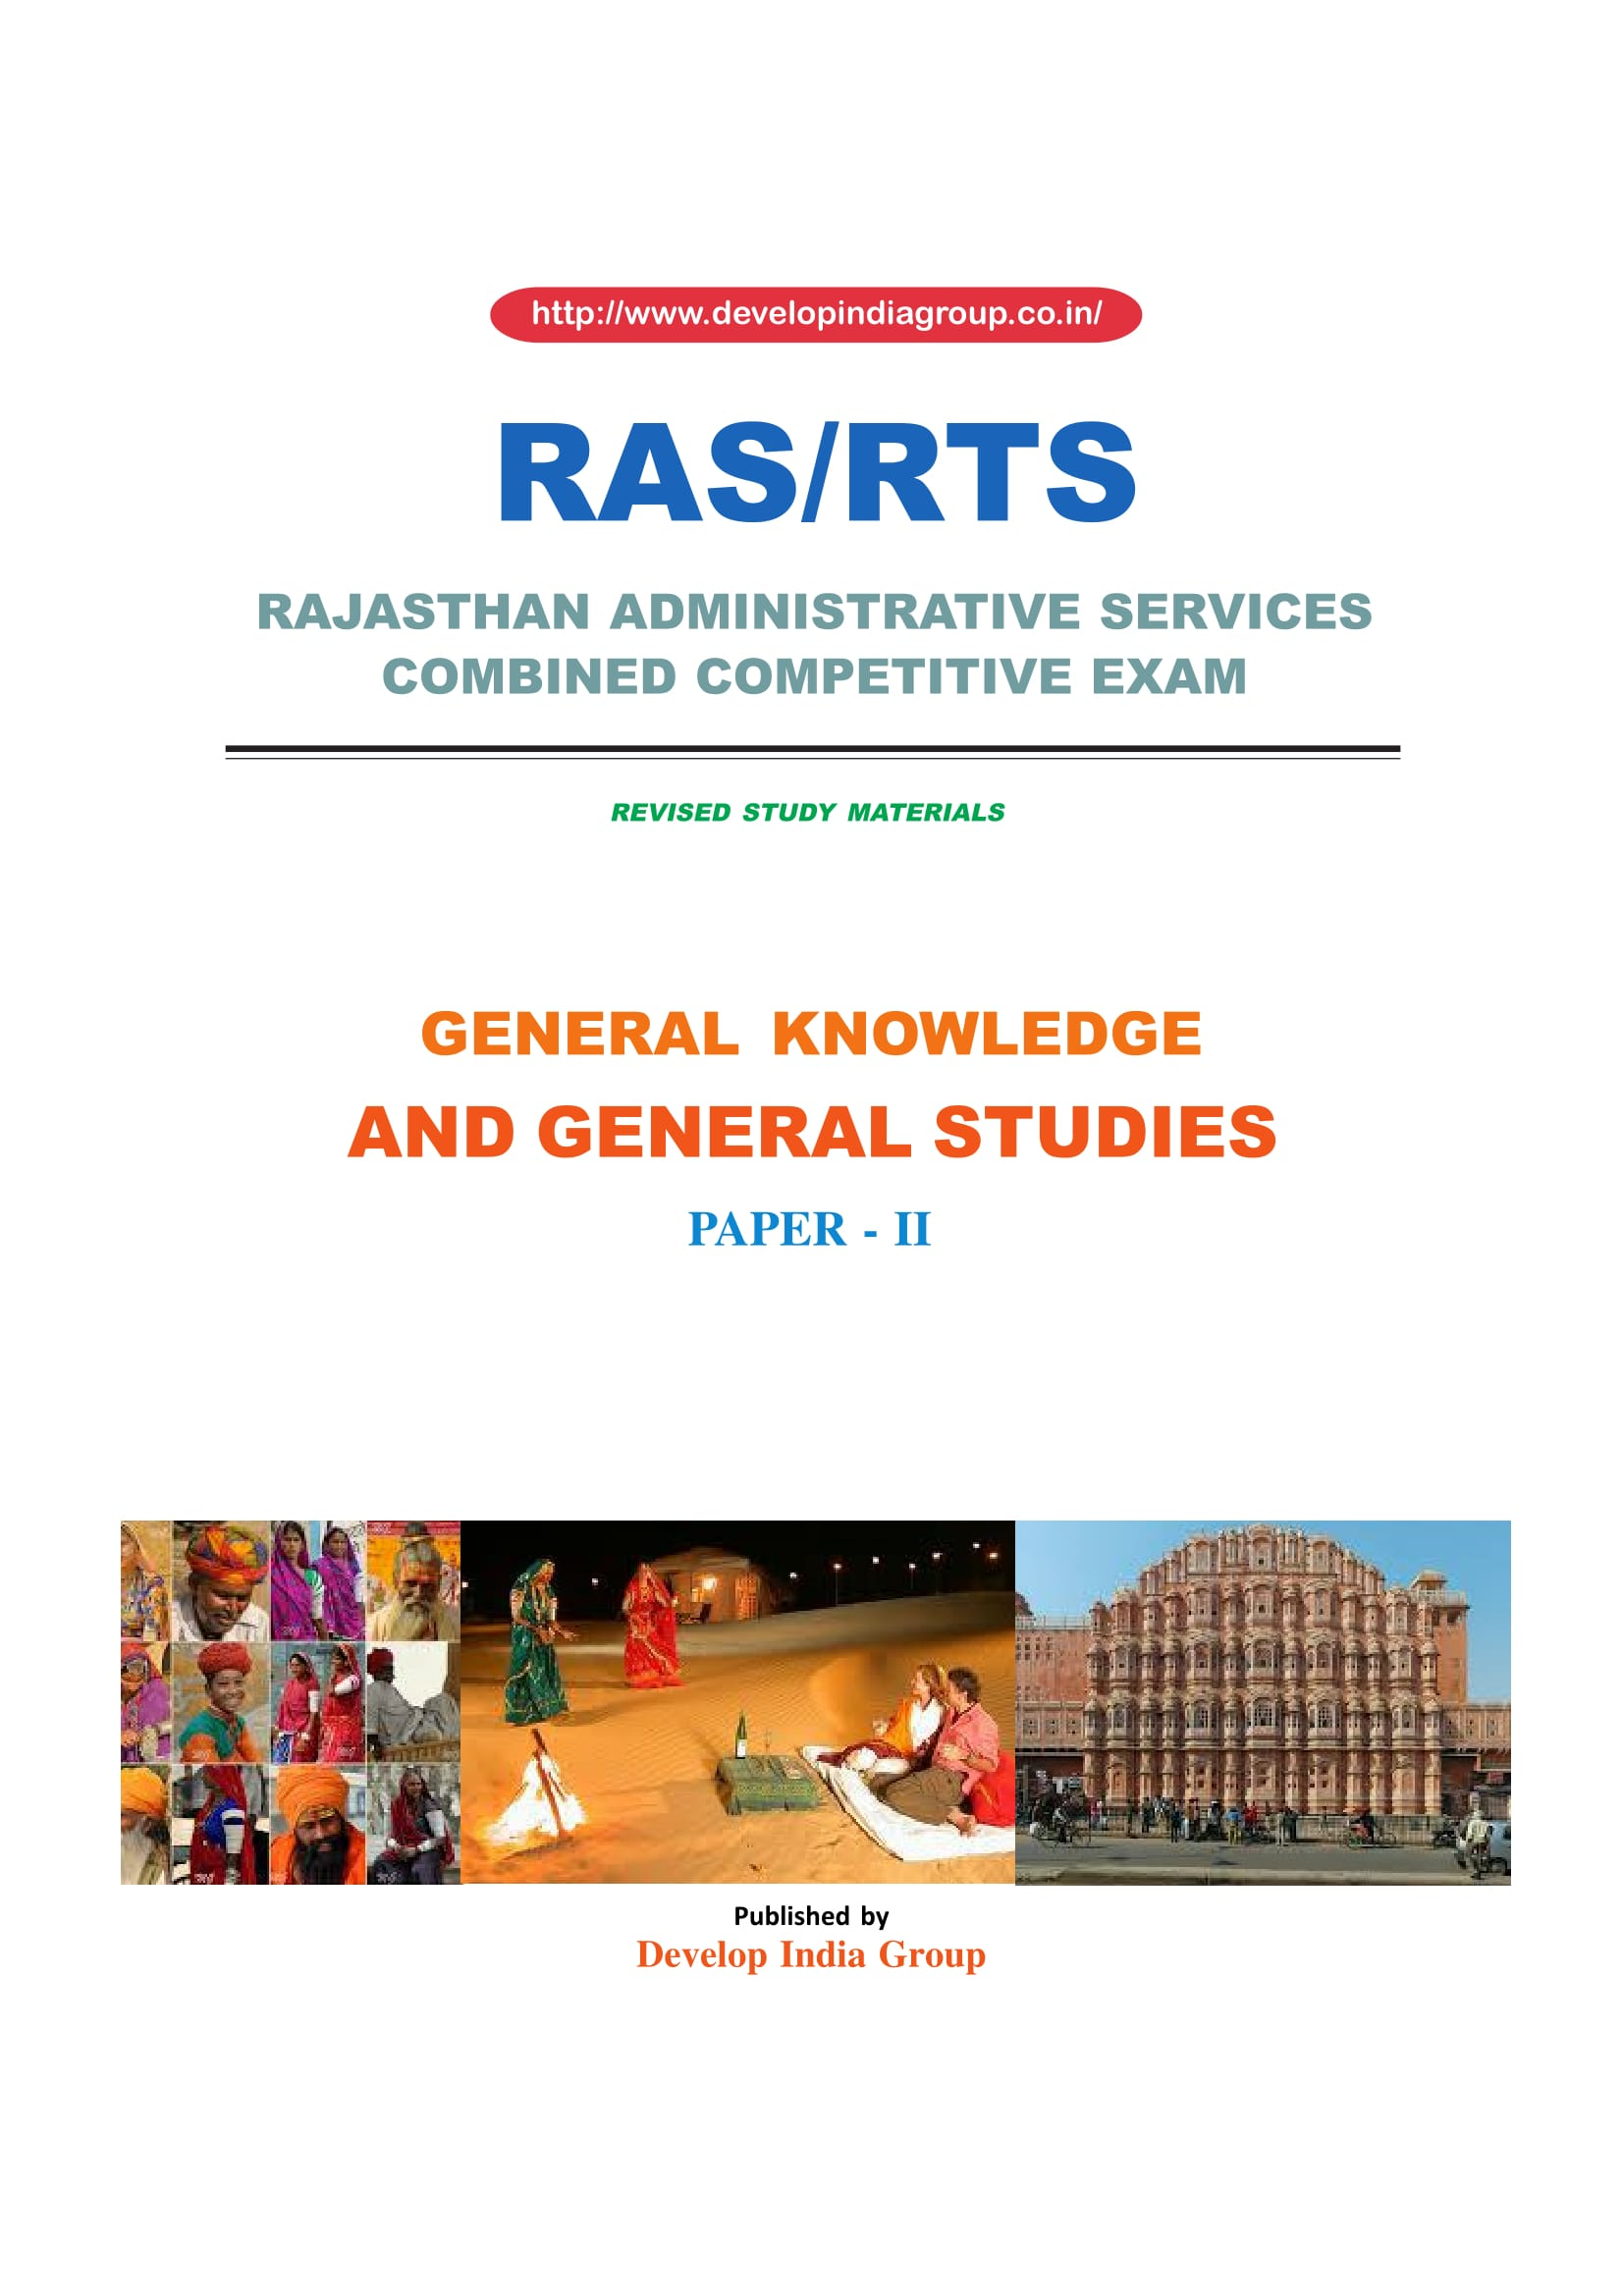 RAS/RTS Prelims & Mains Exam Complete Study Notes Available